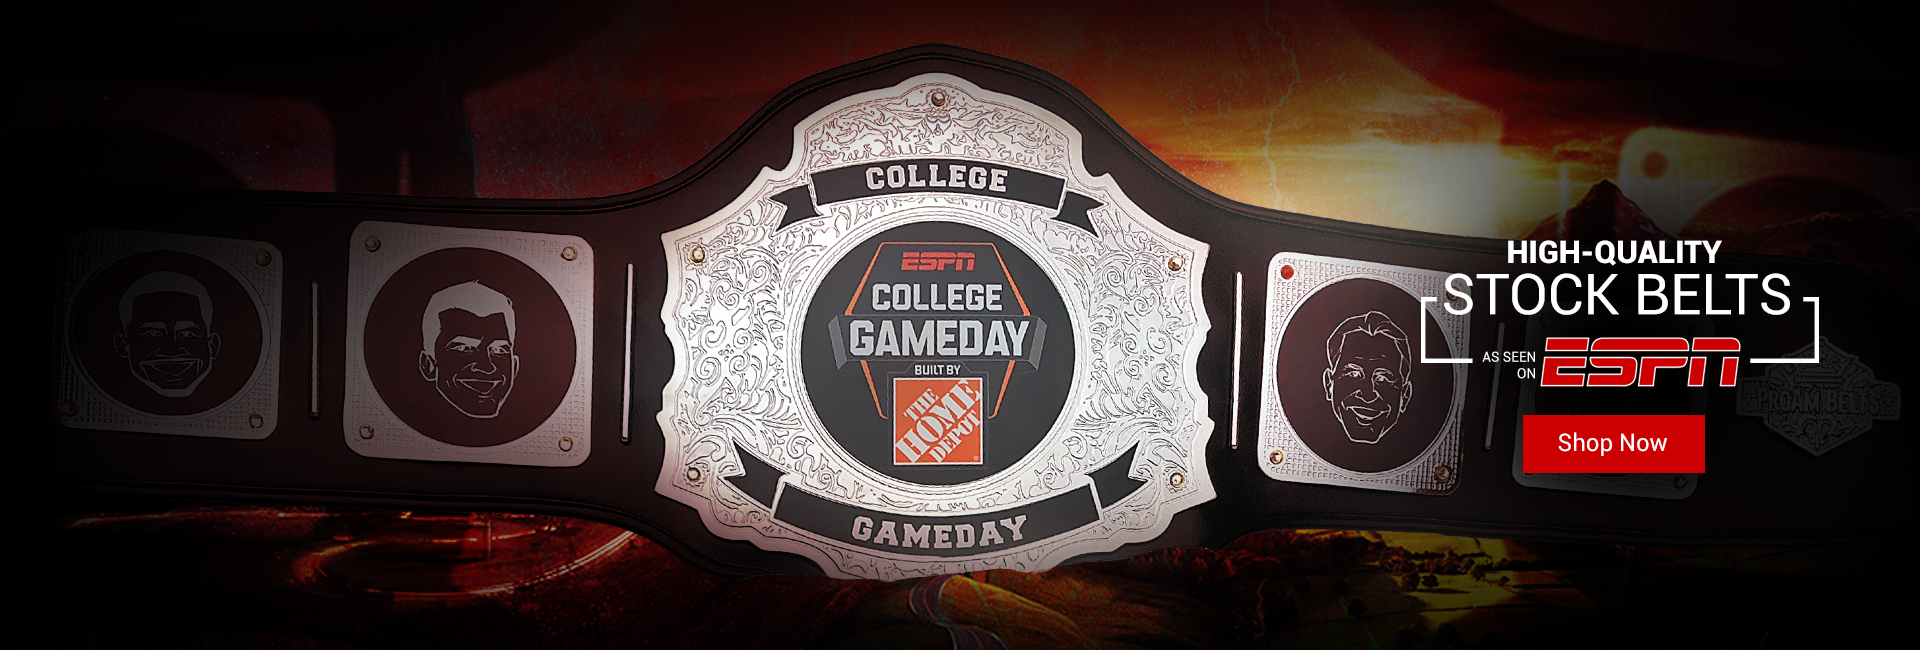 Stock Belts: As seen on ESPN